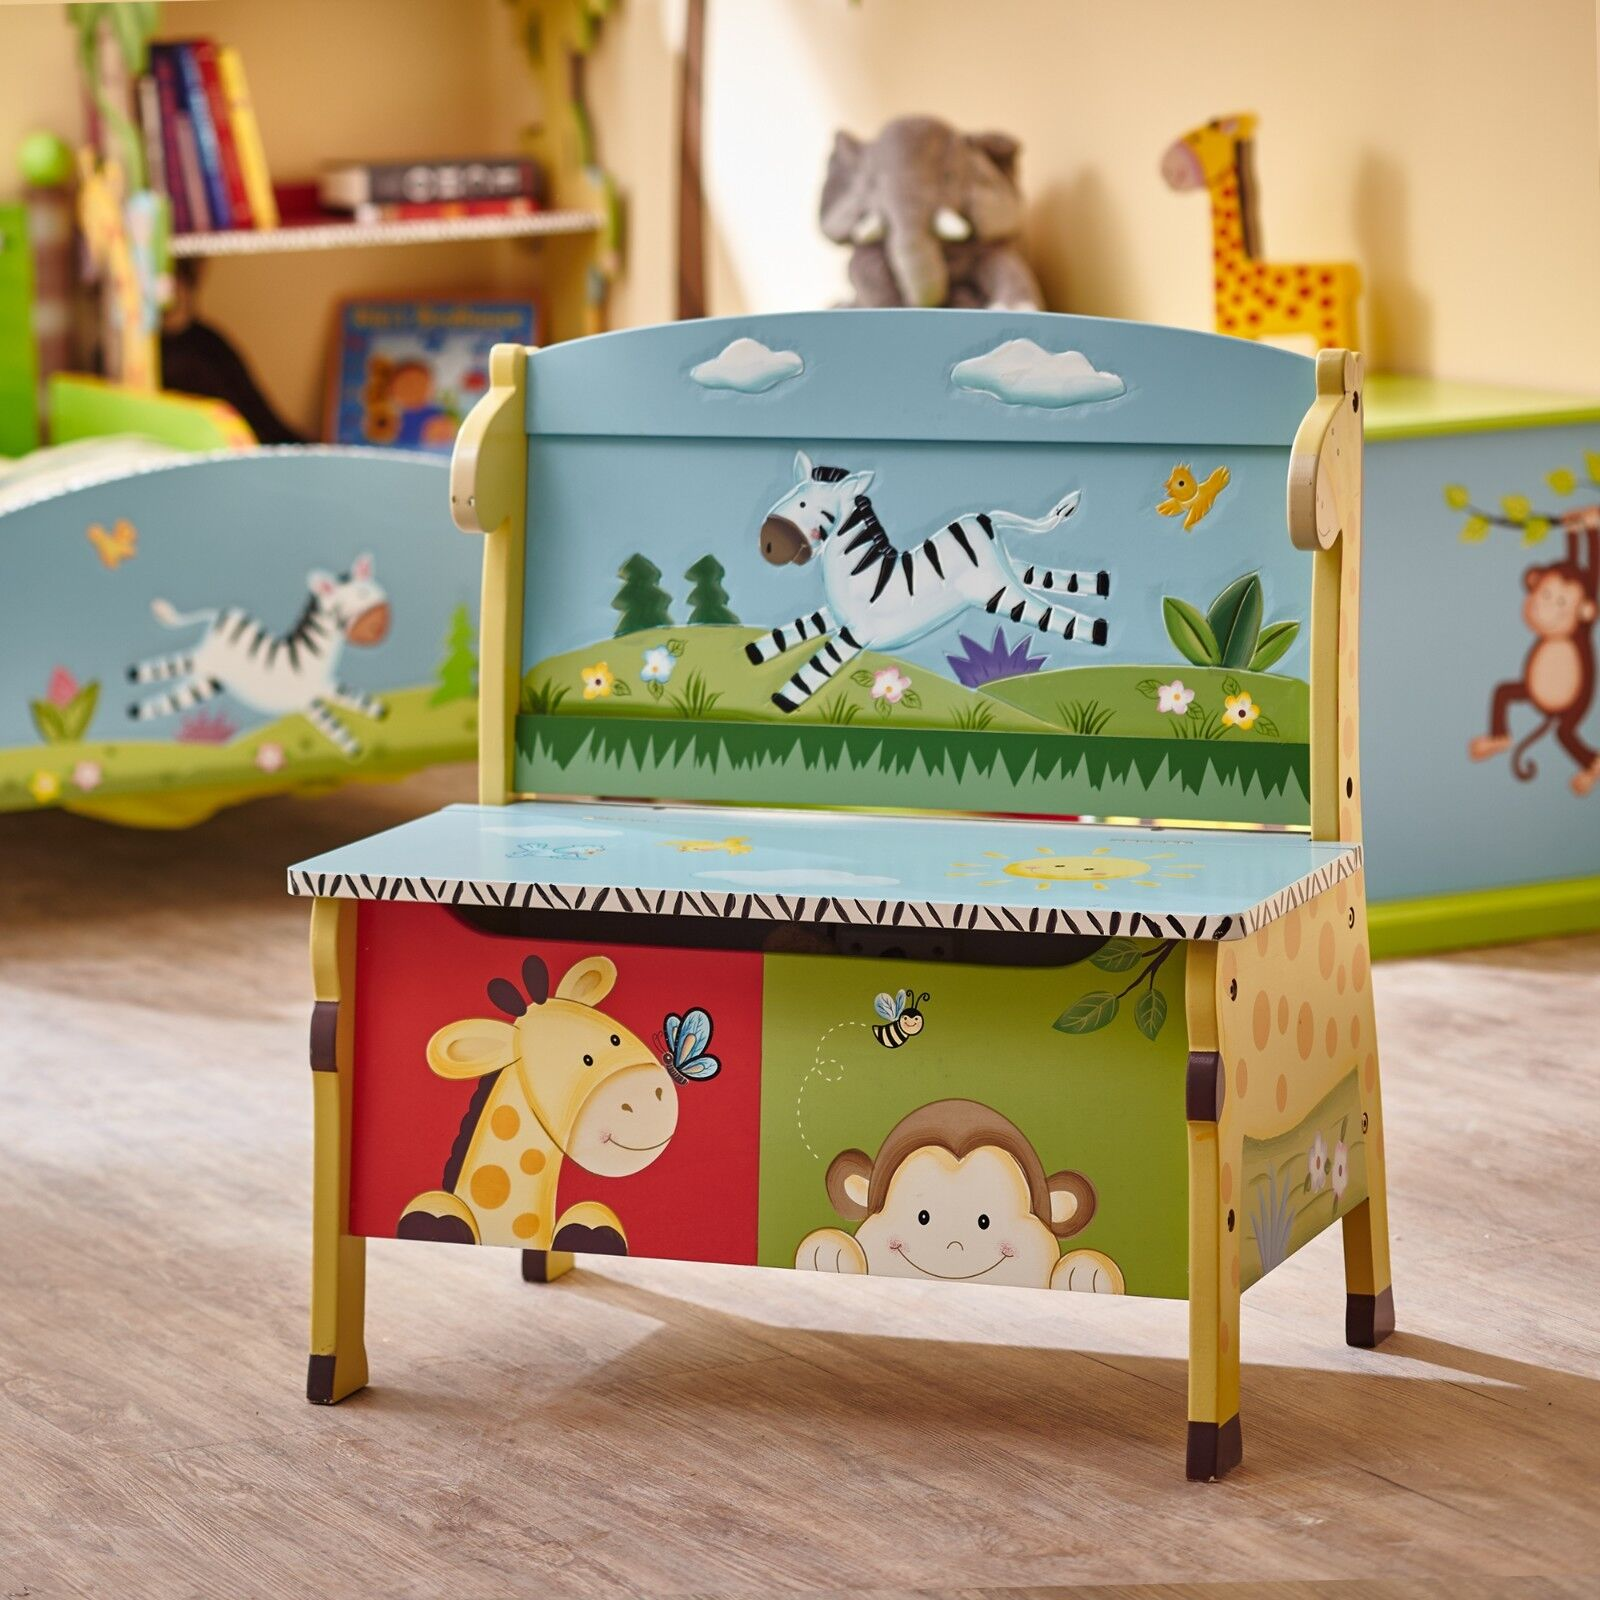 Kids wooden toy chest sunny safari - Childrens Sunny Safari Animals Themed Kids Wooden Toy Box Storage Bench 9 123 50 9 Of 10